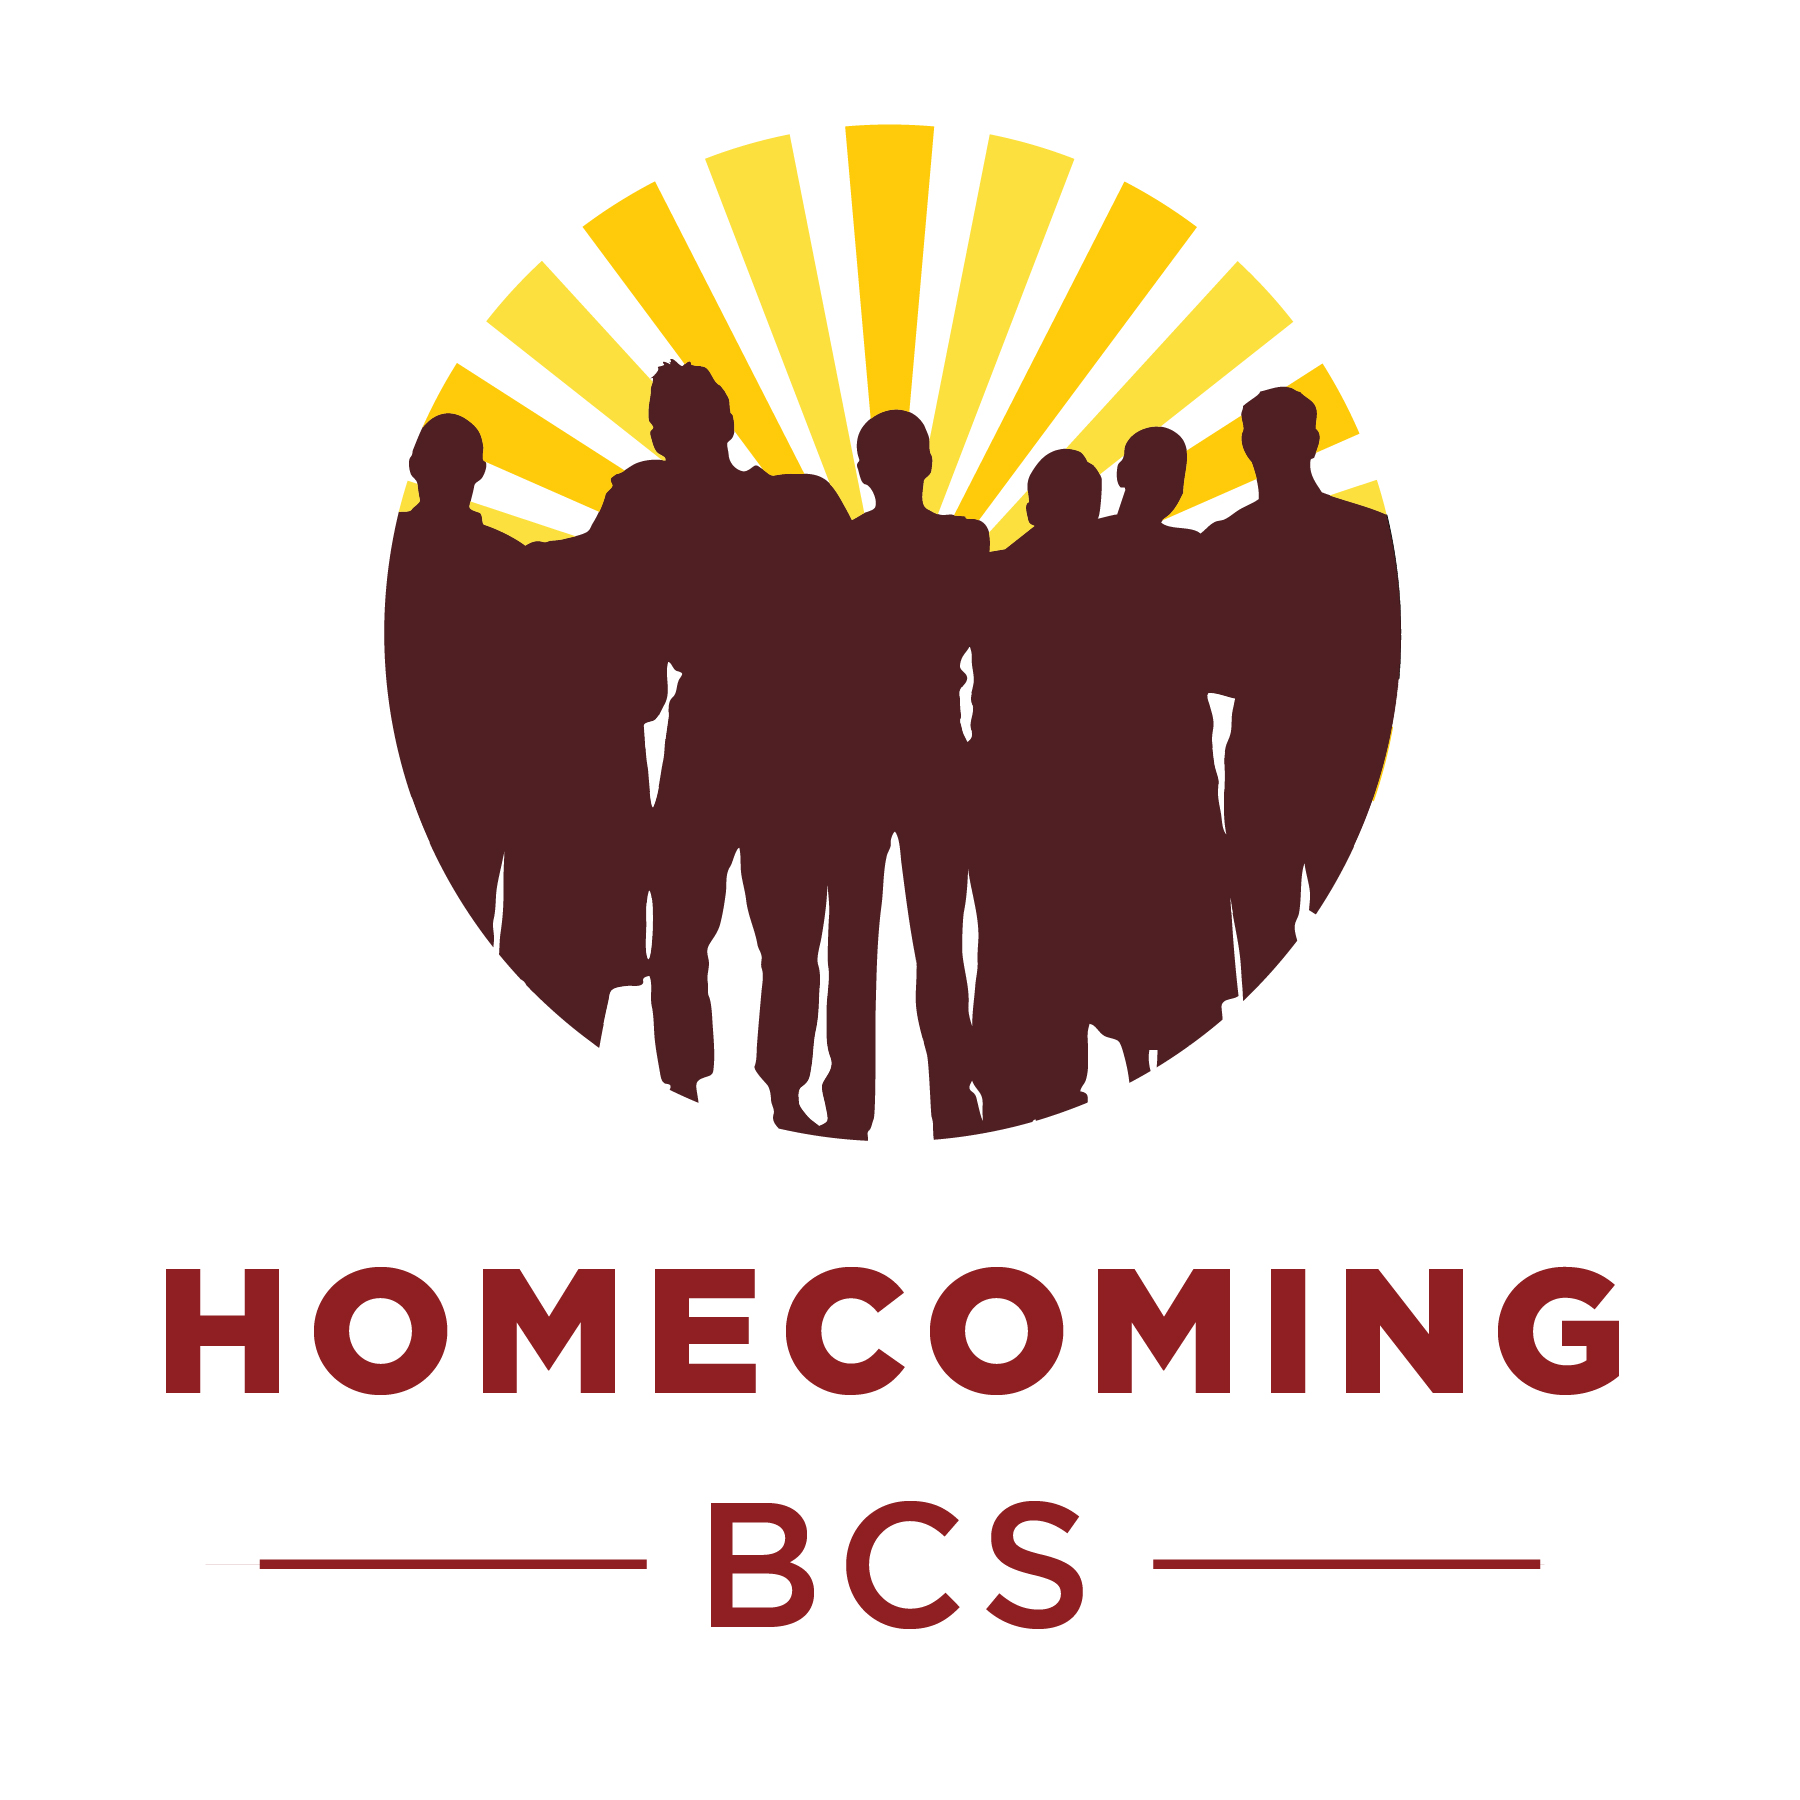 Save the date for this year's Homecoming! - It will be held here at BCS on Saturday, October 13th.Please invite your family and friends for a fun-filled day!